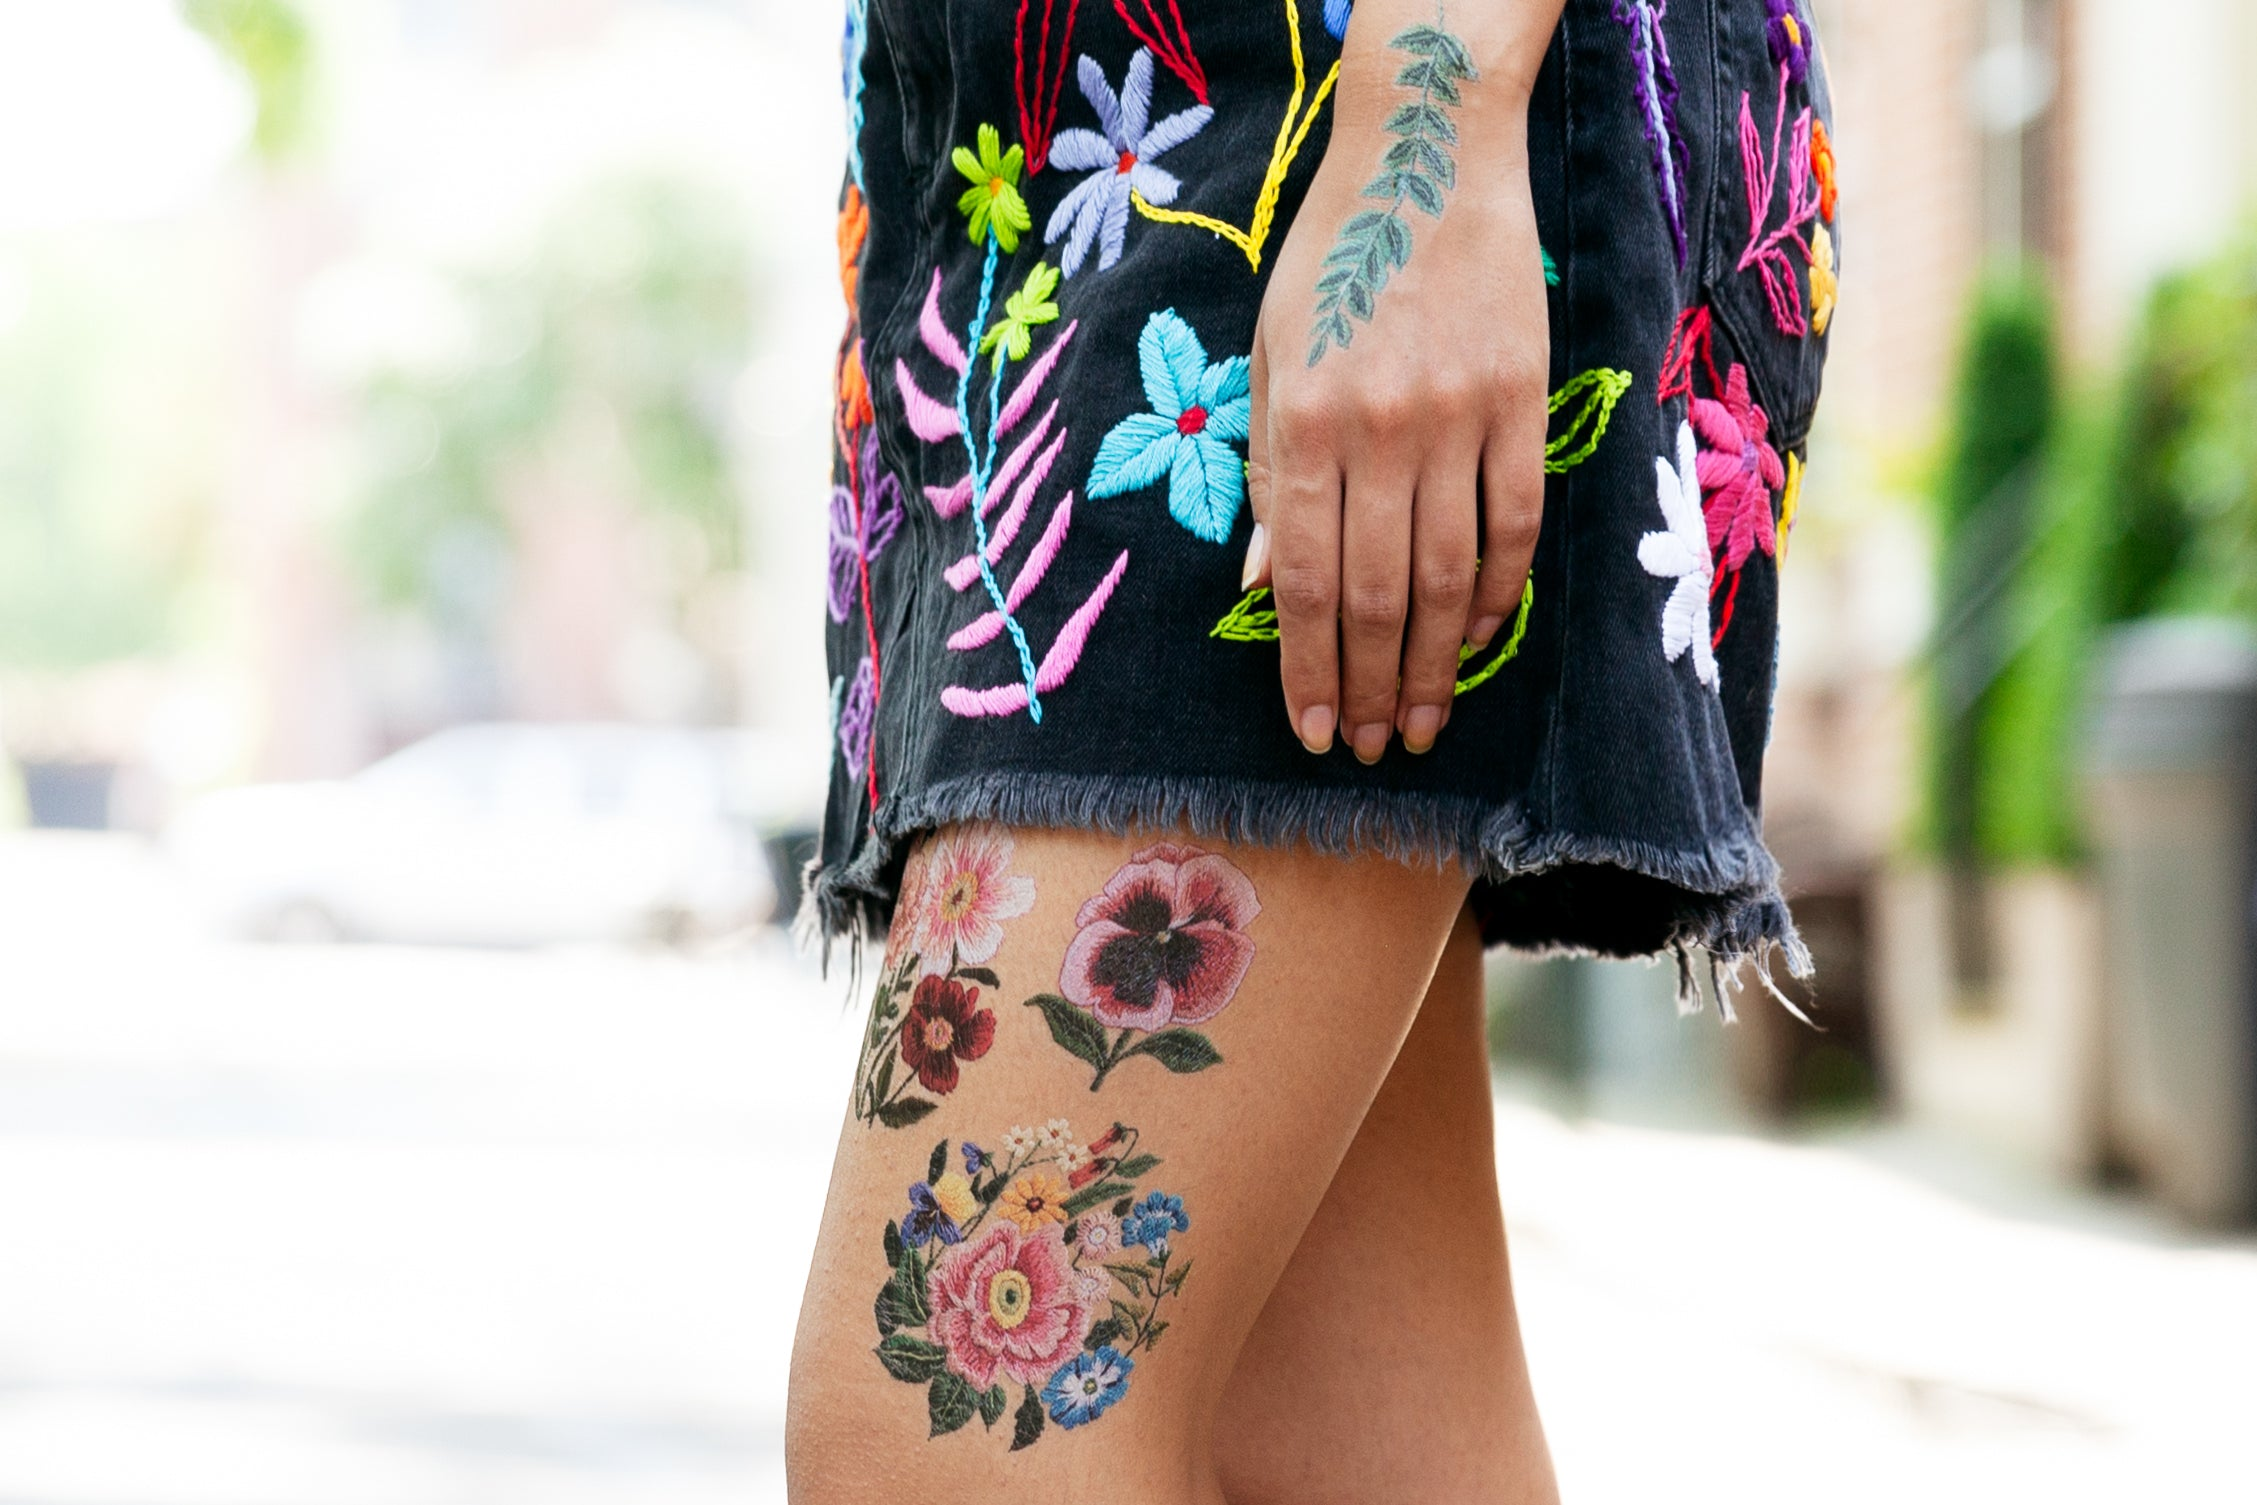 Introducing Embroidery Tattly by Tessa Perlow